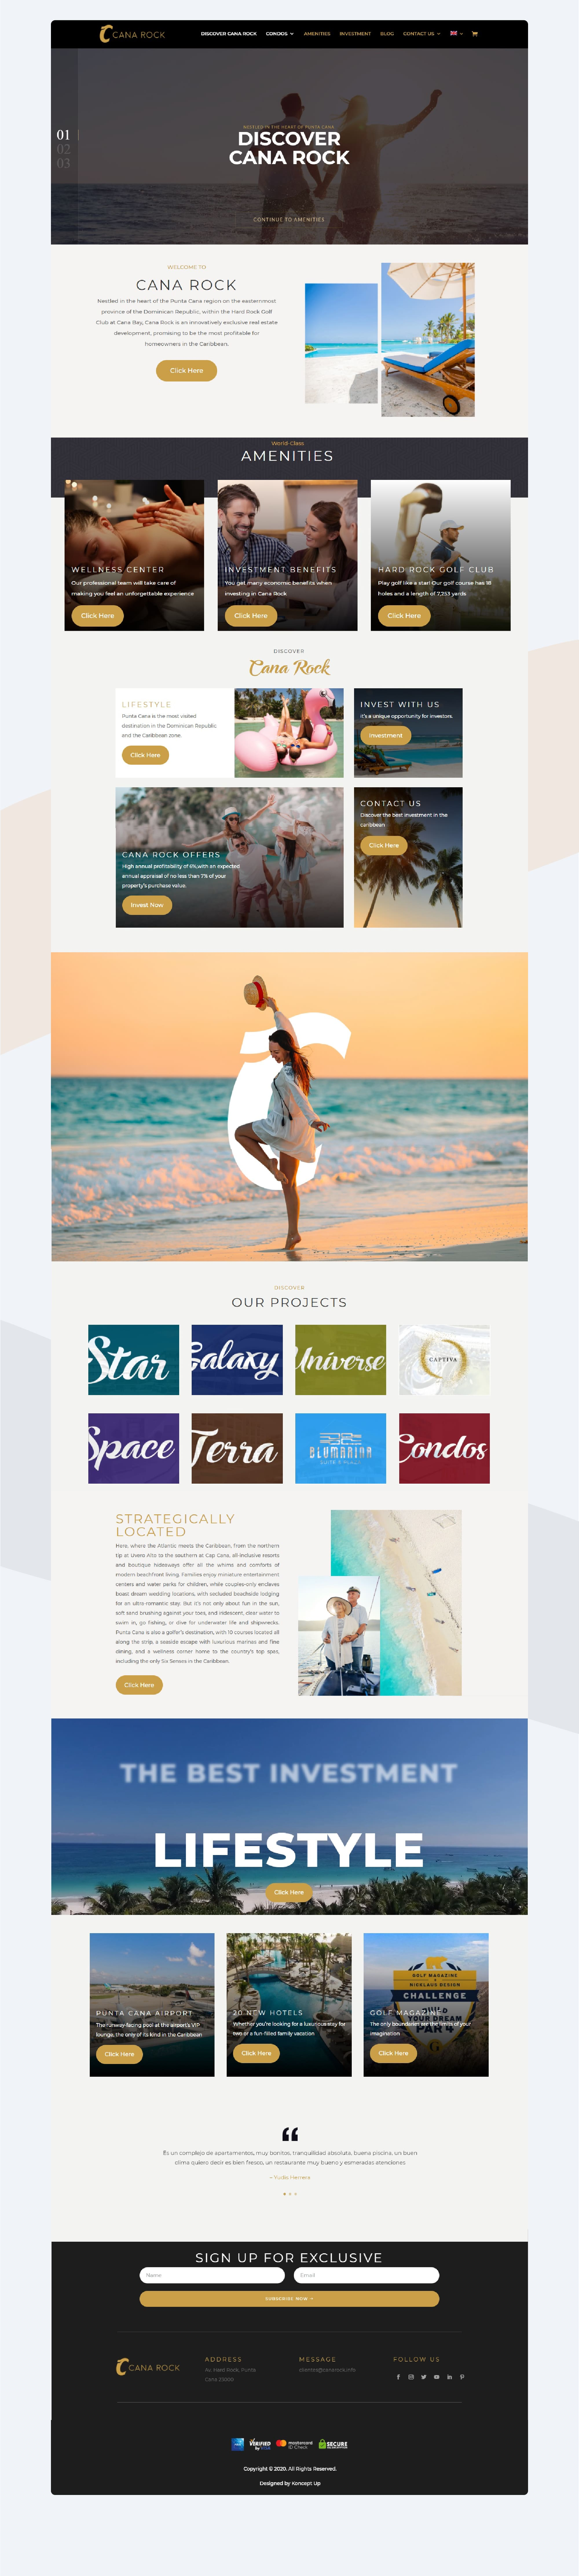 Landing Page Cana Rock